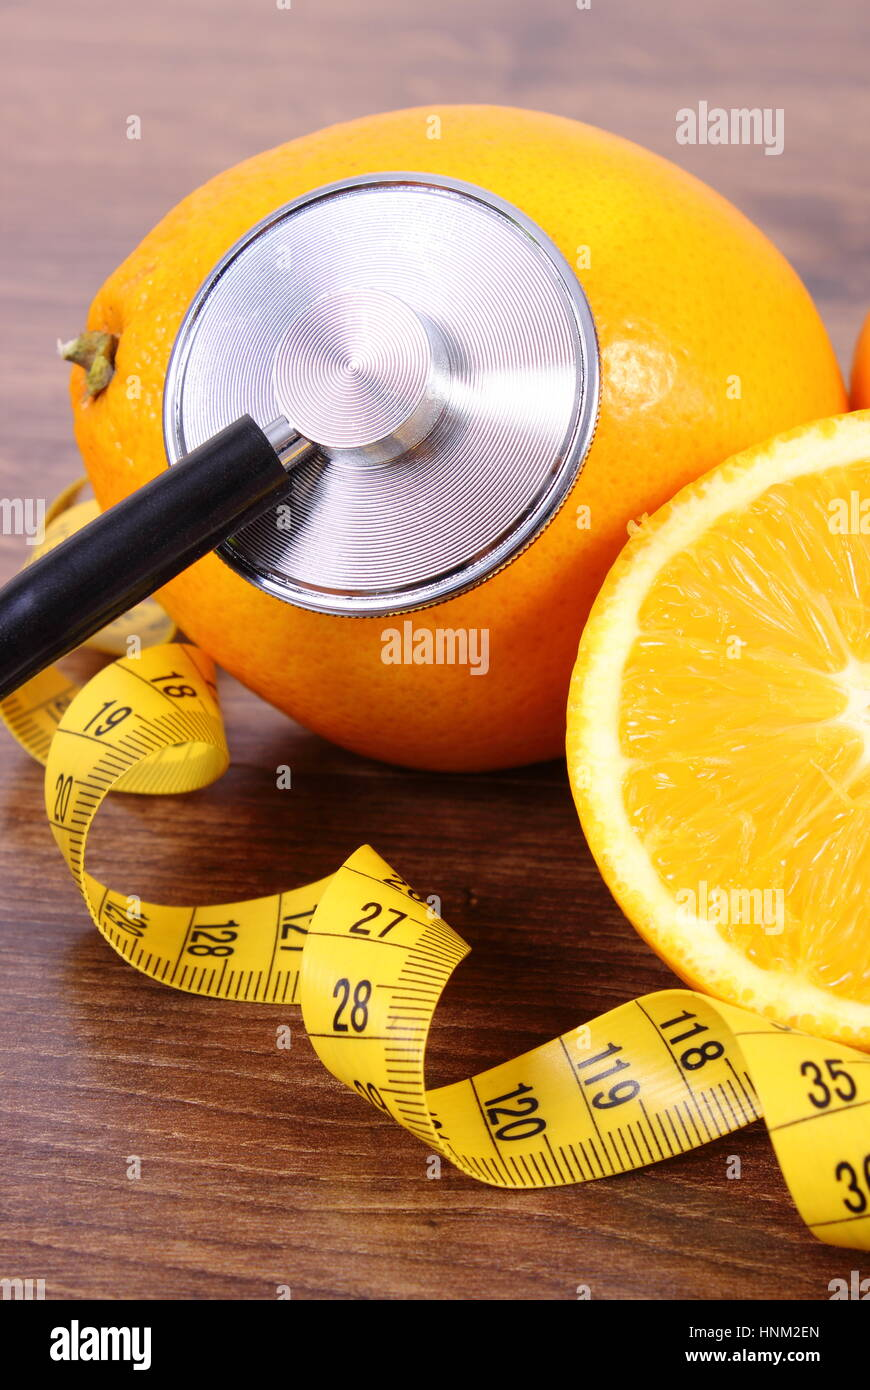 Medical stethoscope and tape measure with fresh ripe orange on wooden surface plank, healthy lifestyles and nutrition - Stock Image